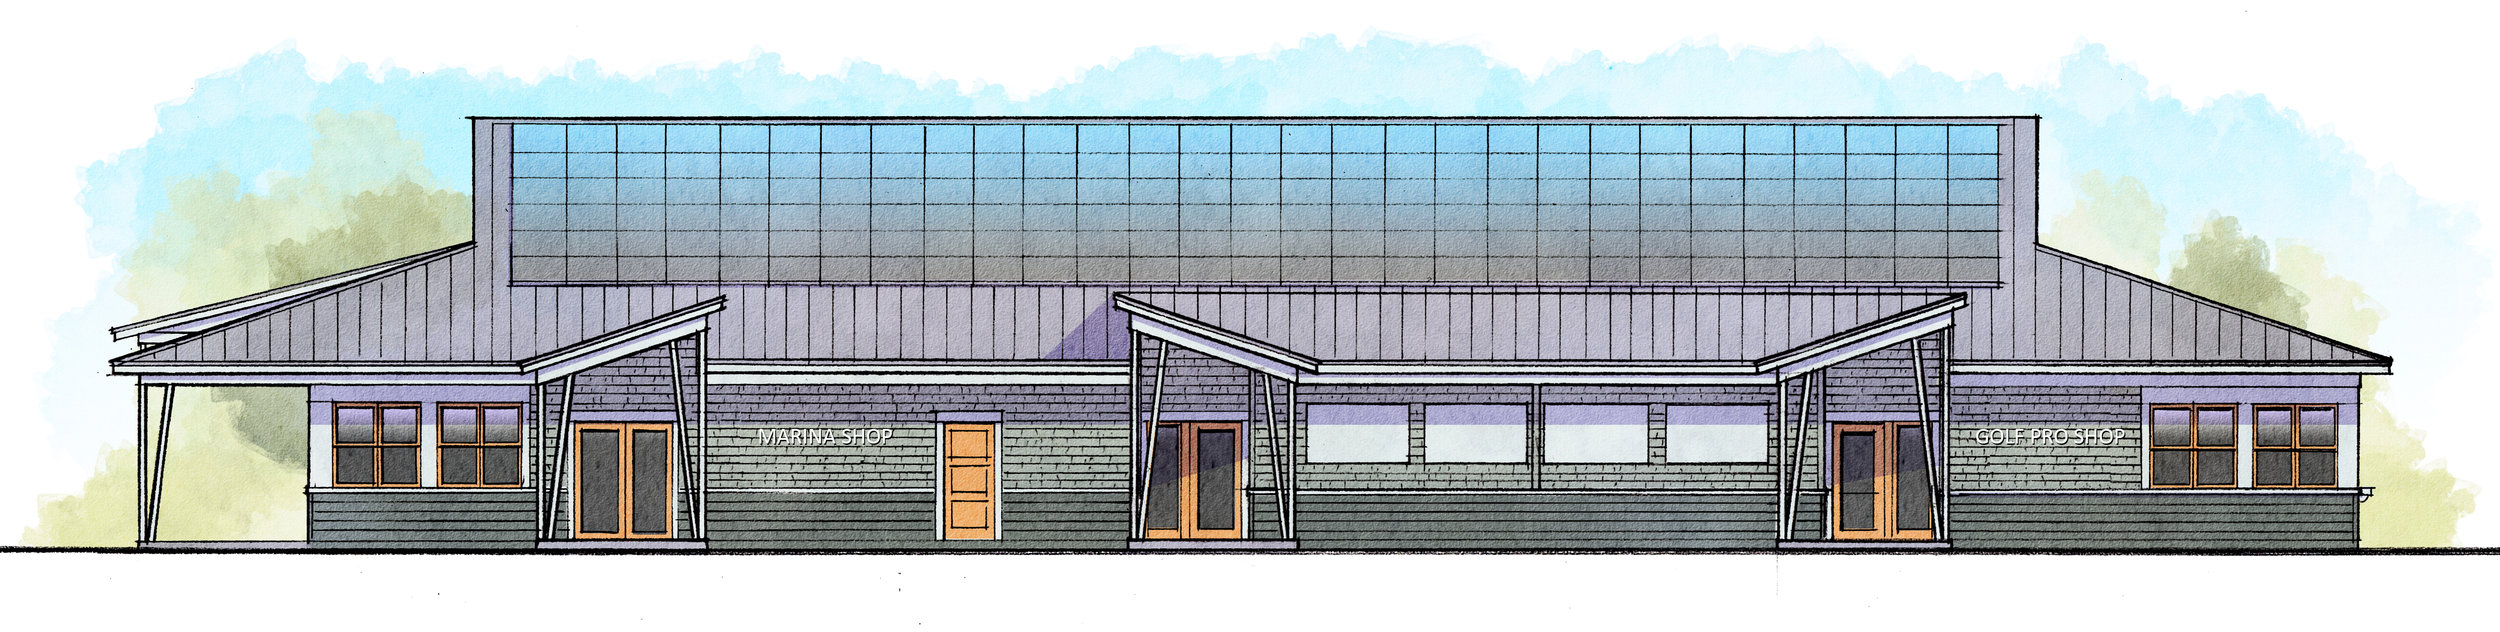 clubhouse south elev-color.jpg